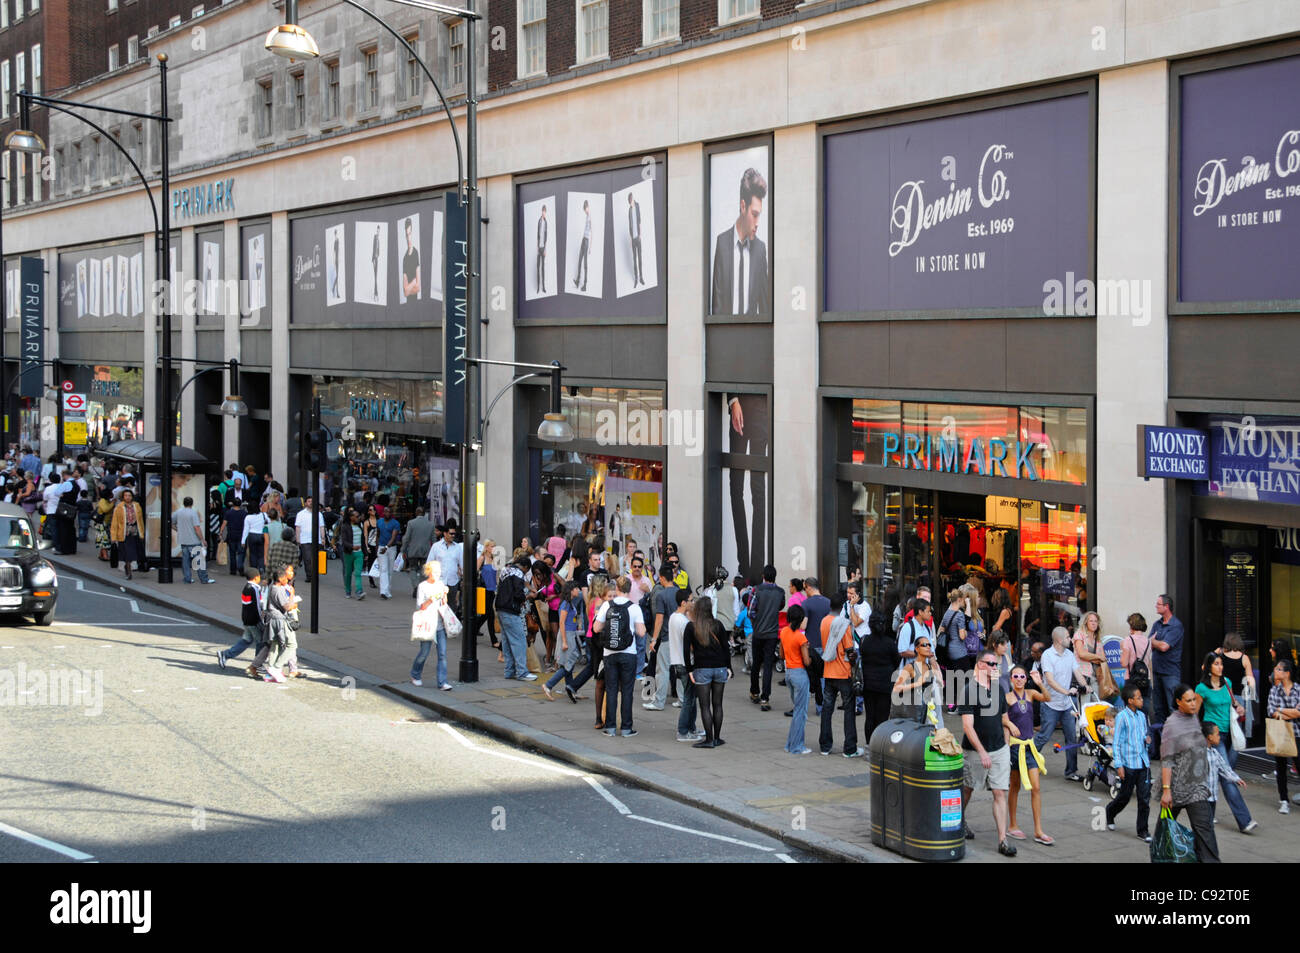 Primark Clothing Store In London Oxford Street Clothes Shop Stock Photo 40015374 - Alamy